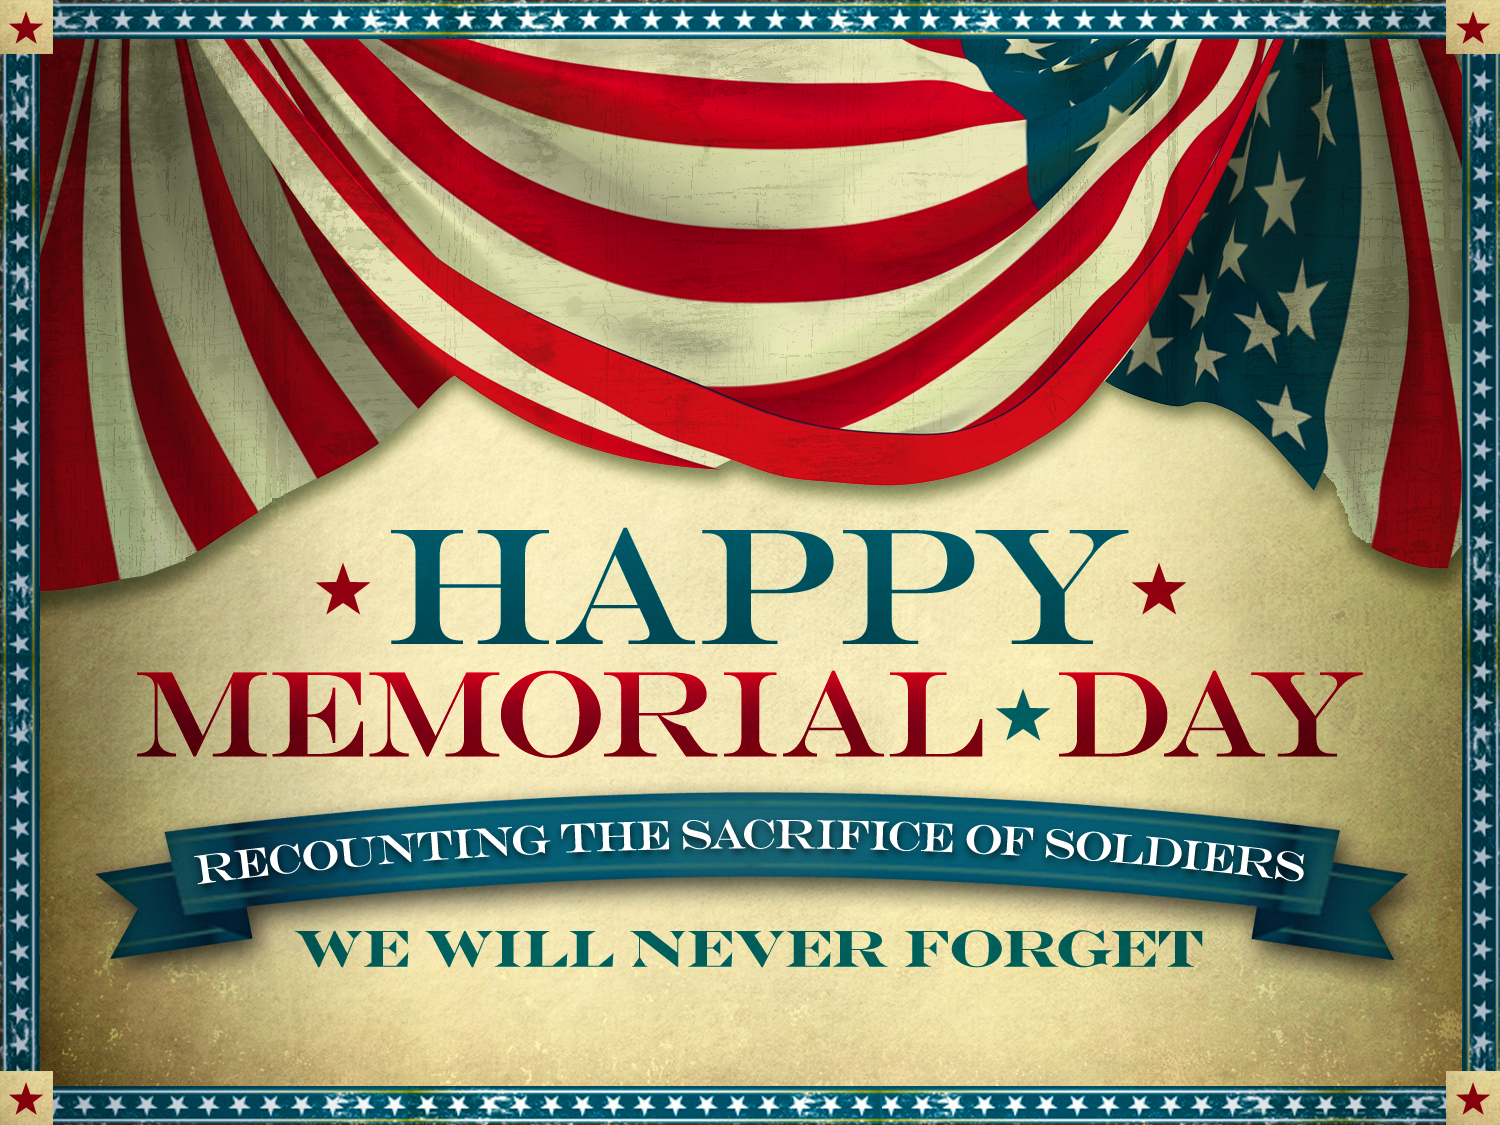 3a64804c69 There is much confusion about the difference between Memorial Day and  Veteran's Day. Memorial Day is a day to remember those who have lost their  lives while ...